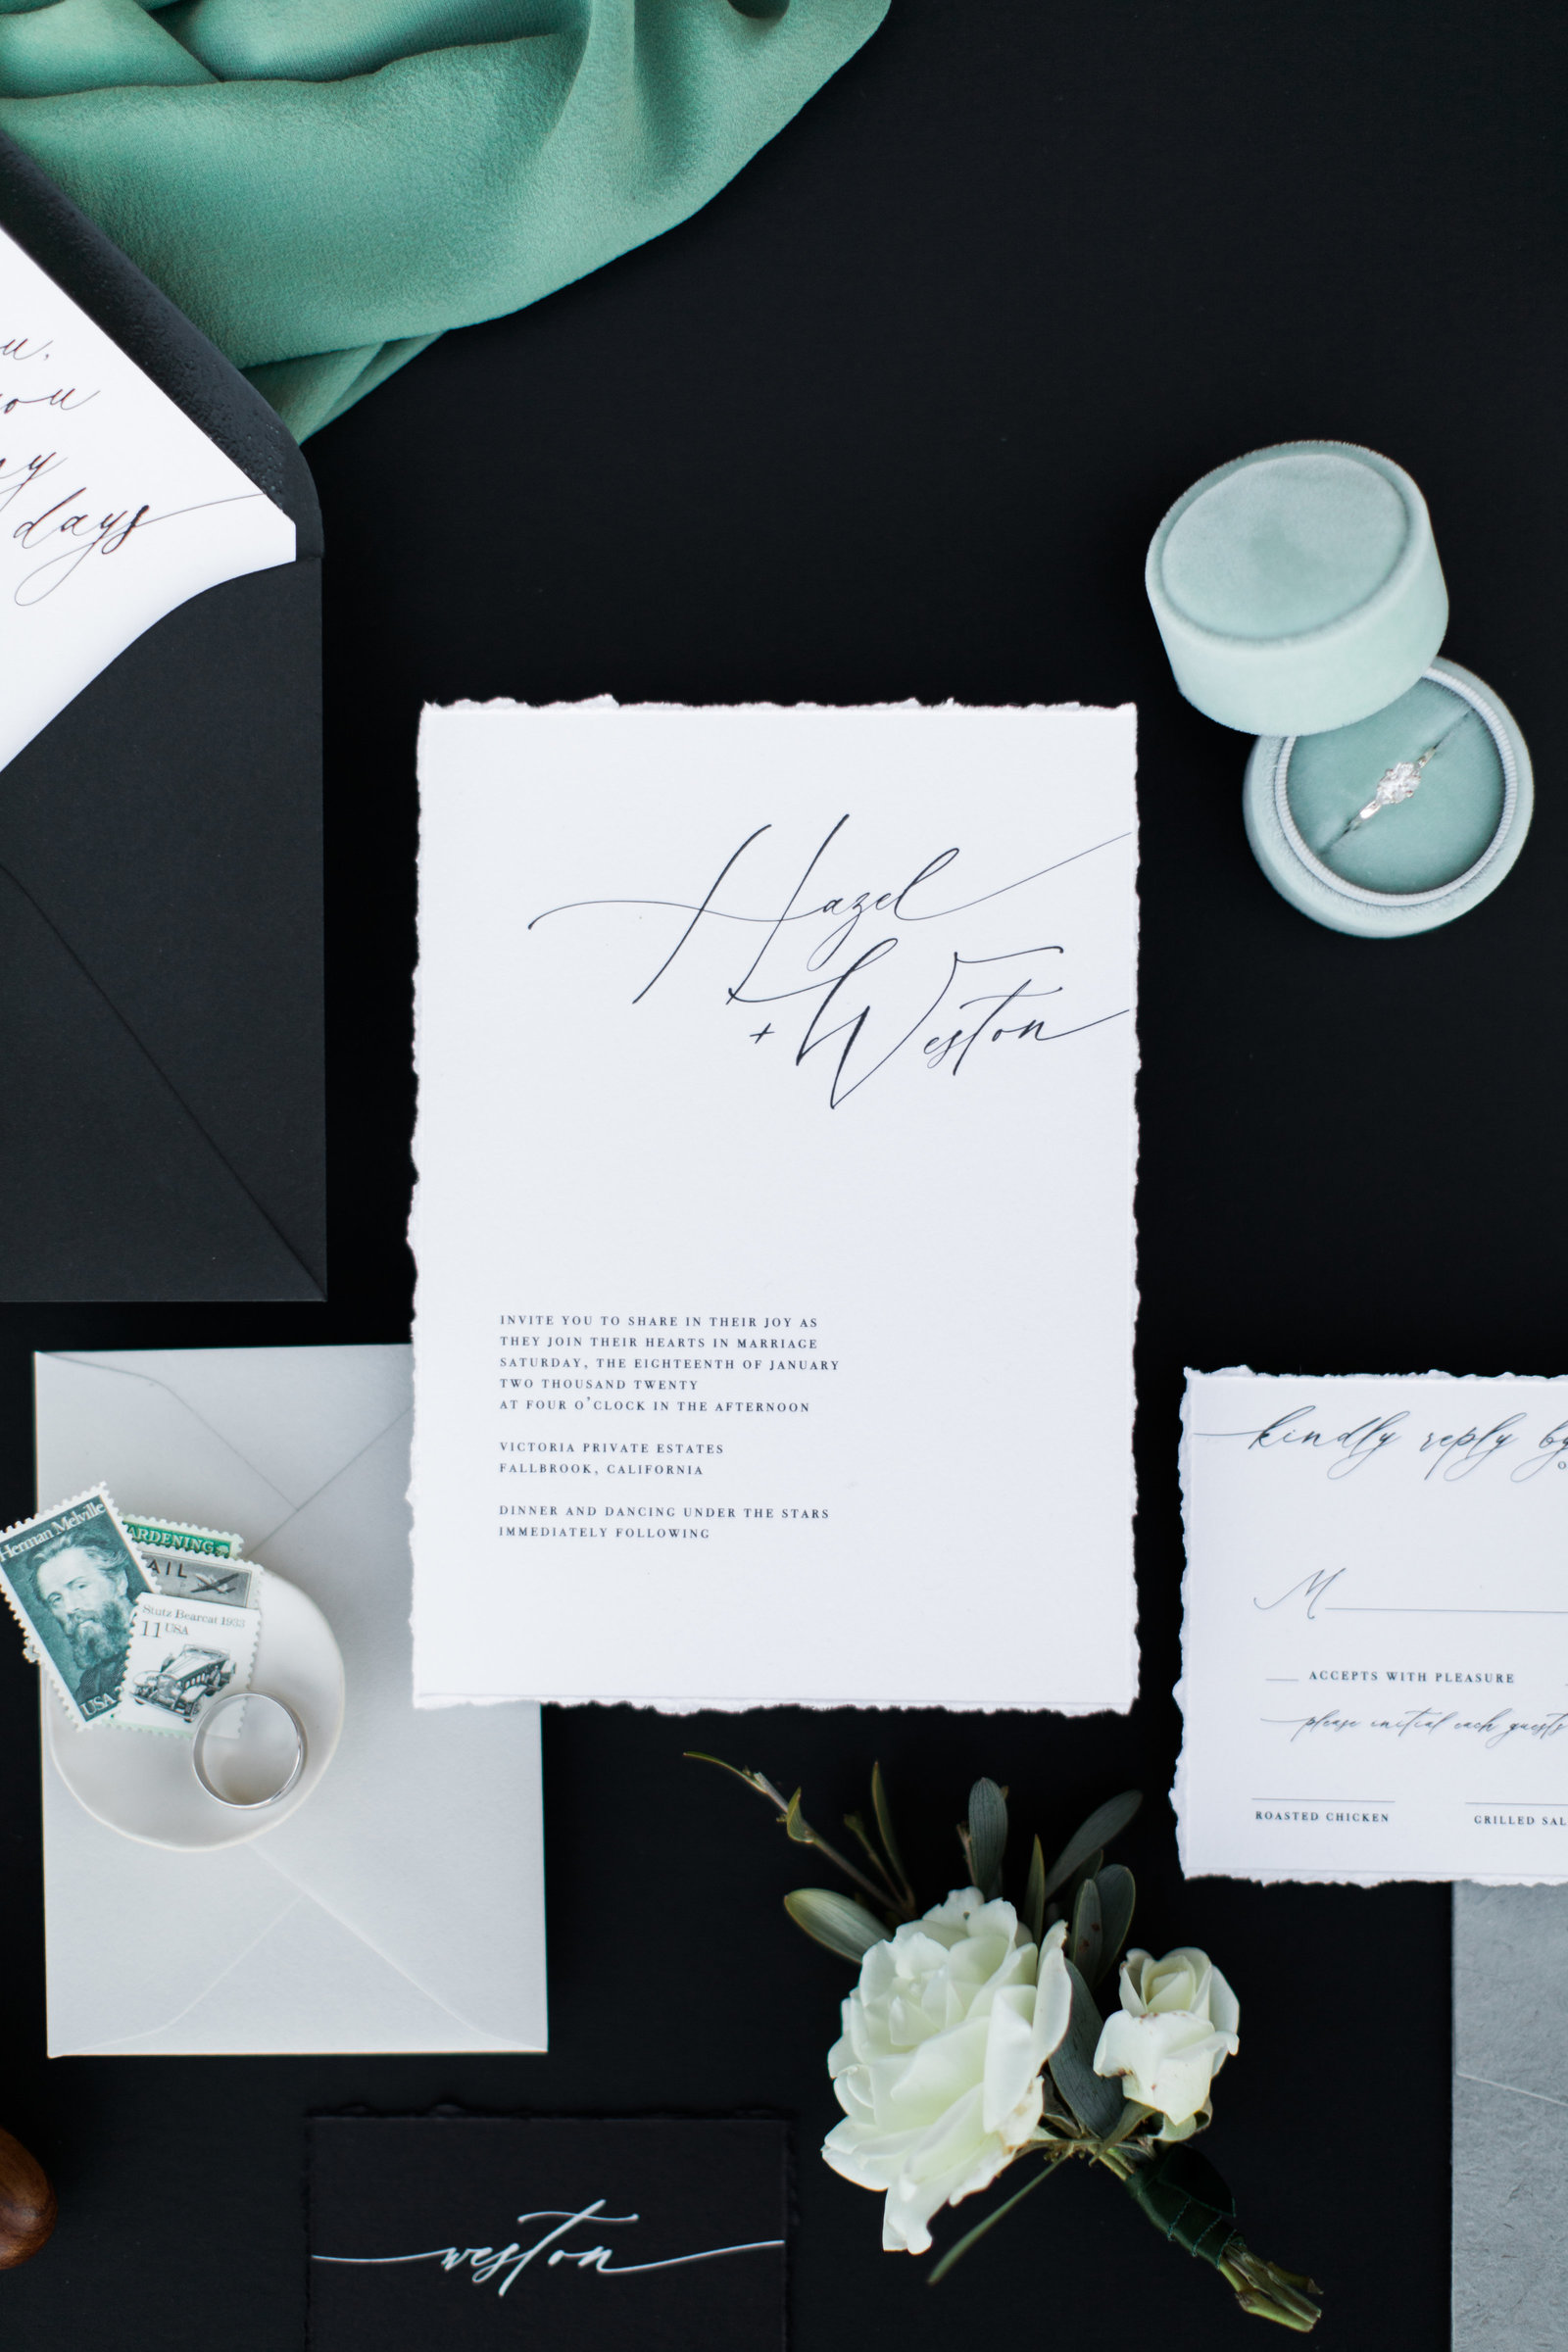 stamps and wedding stationary